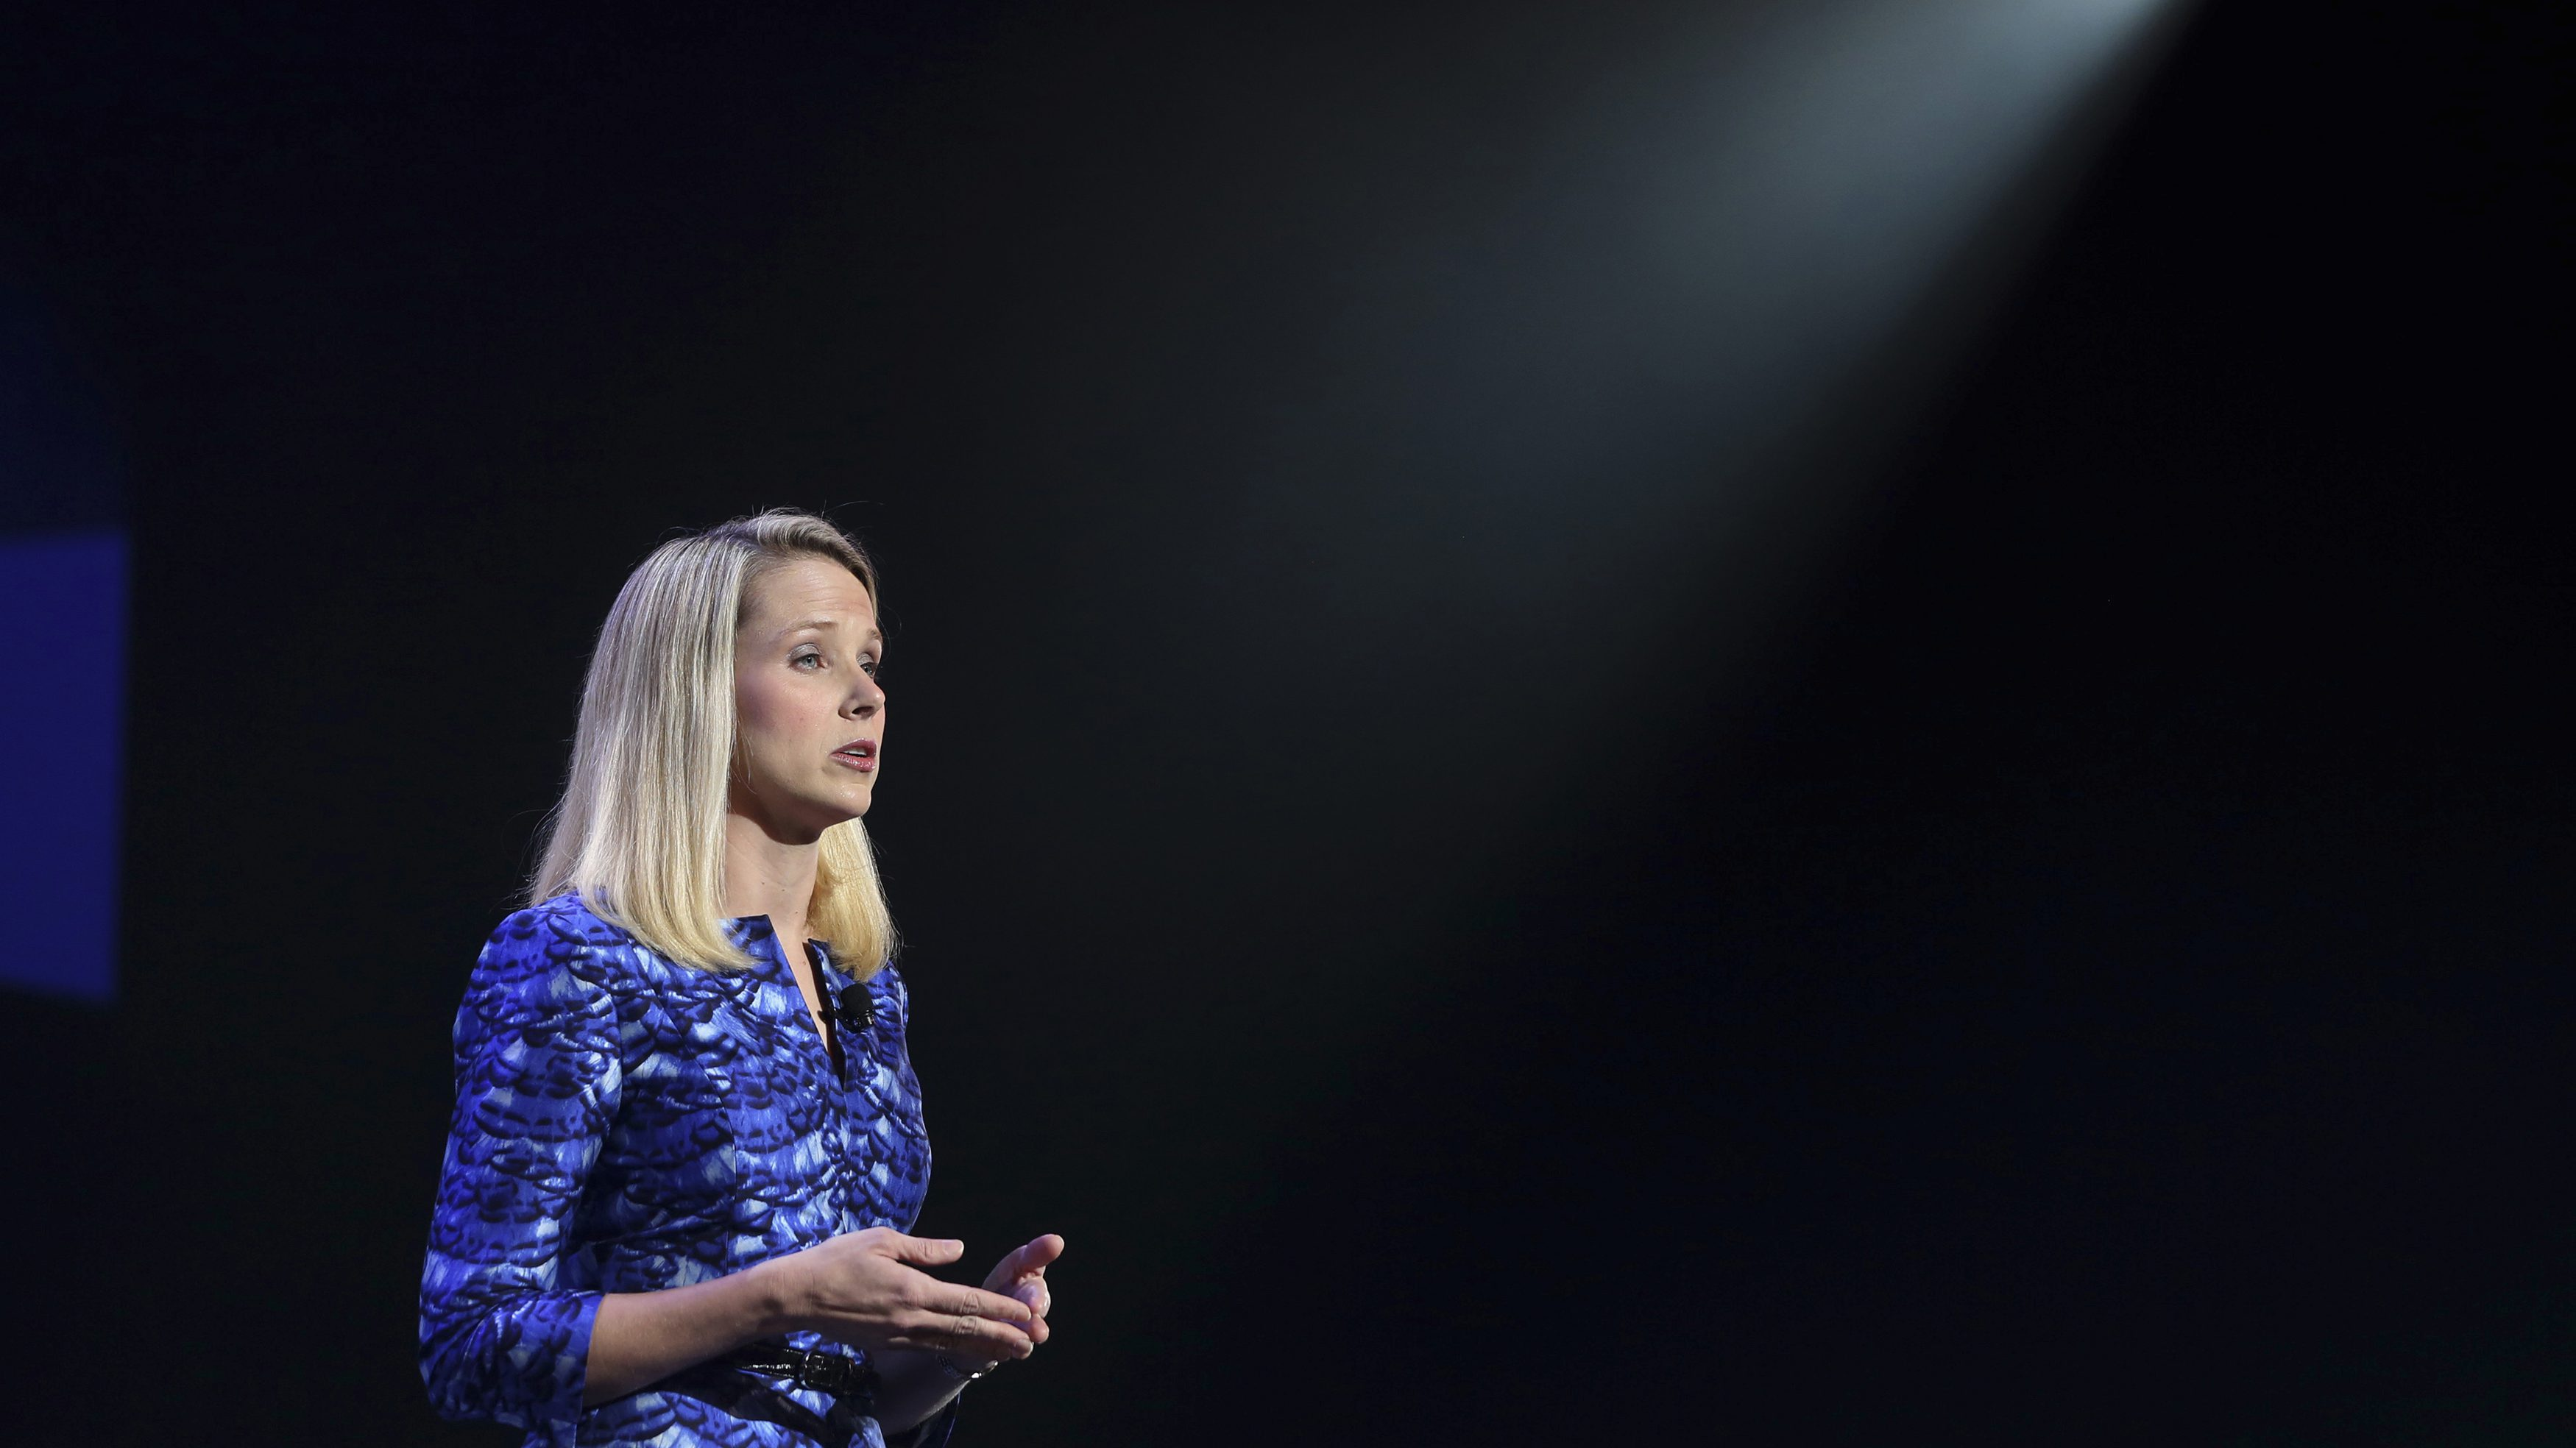 Yahoo CEO Marissa Mayer delivers her keynote address at the annual Consumer Electronics Show (CES) in Las Vegas, Nevada January 7, 2014.